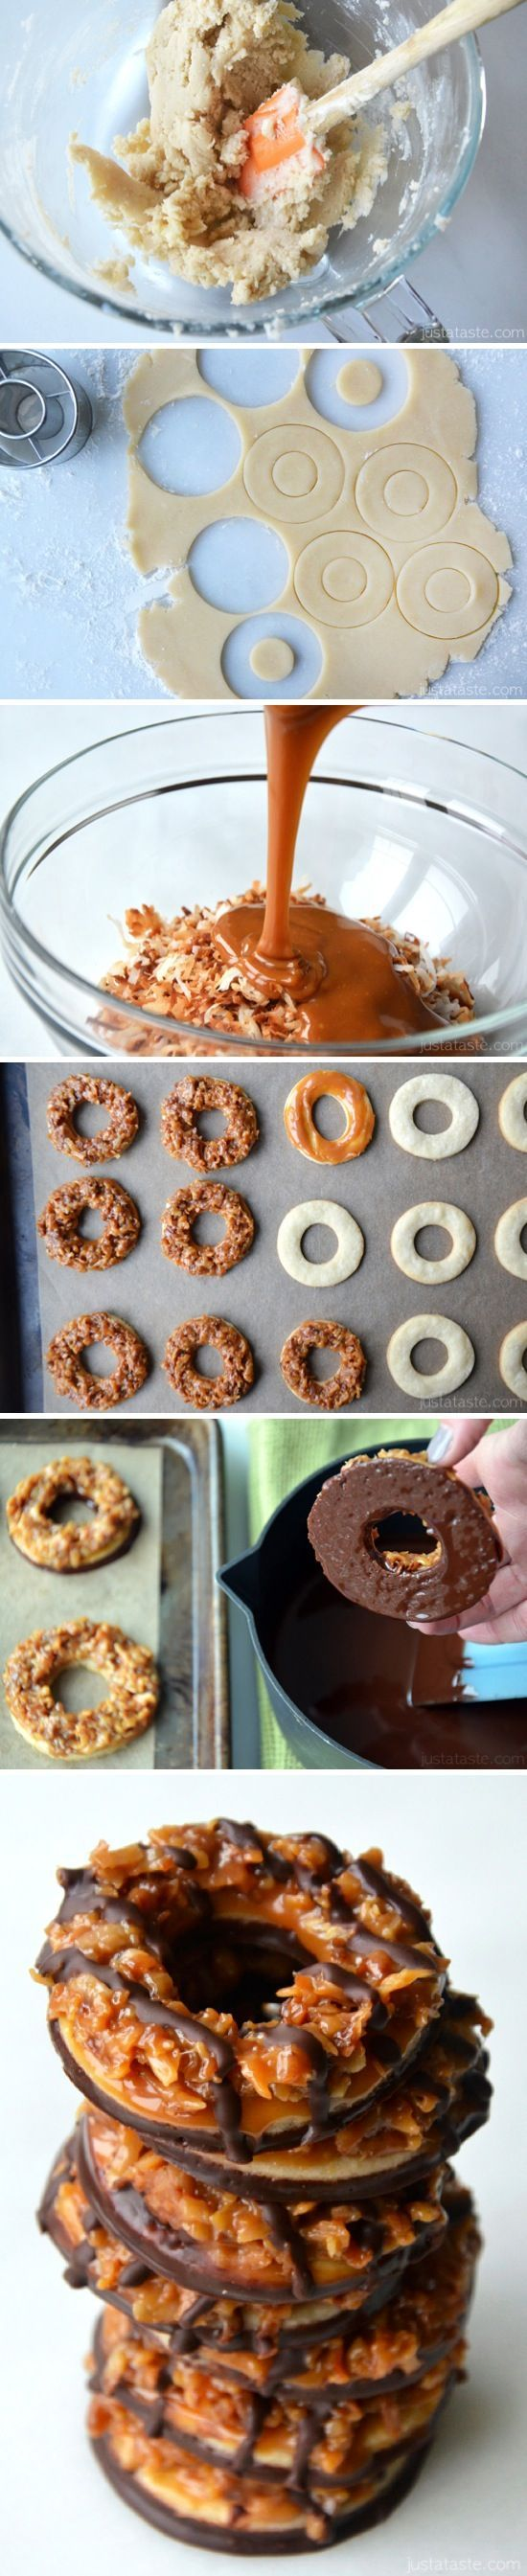 Homemade Samoas Girl Scout Cookies | Recipe By Photo.